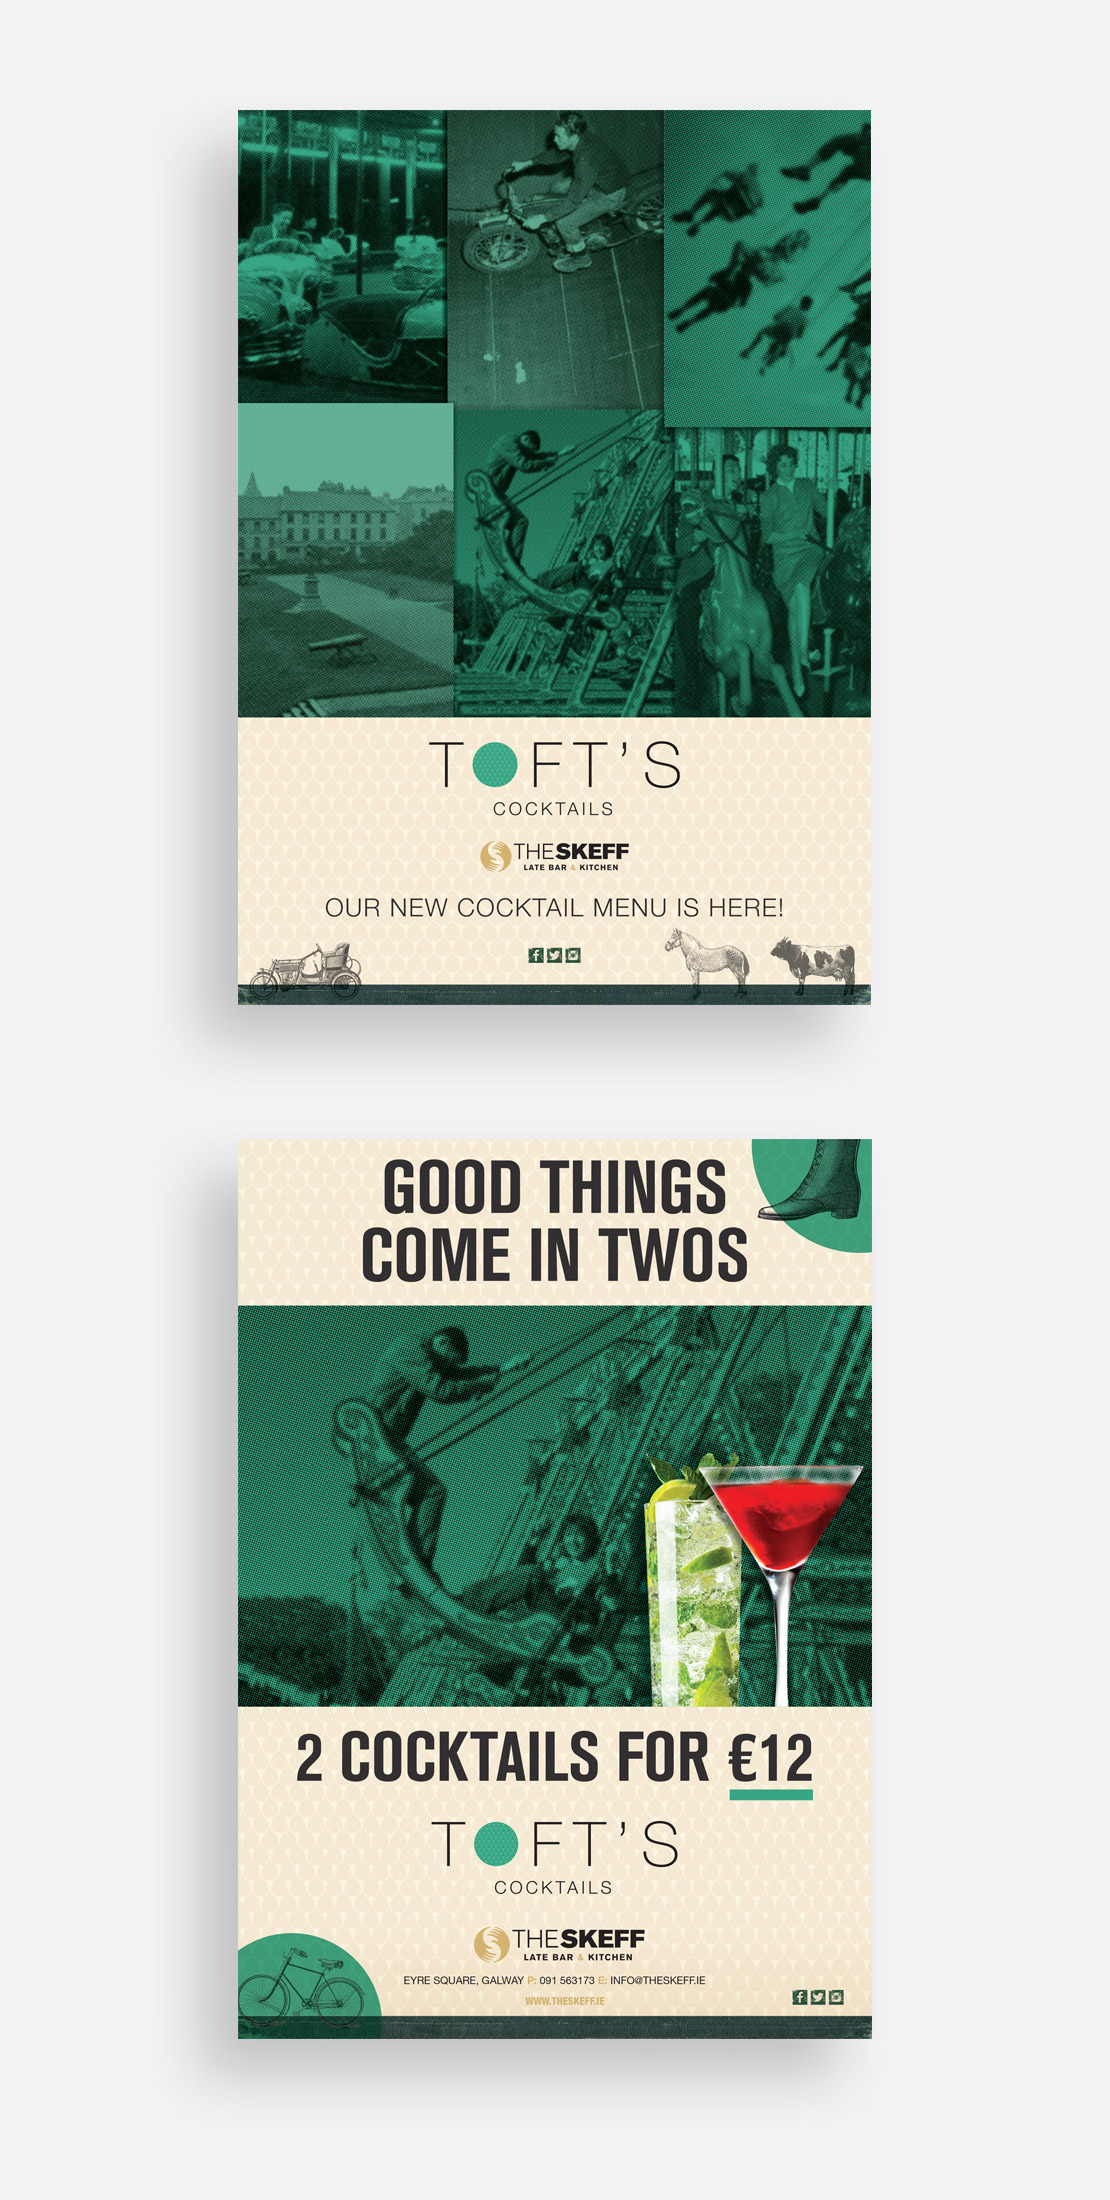 The Skeff's Toft's Cocktail Bar poster campaigns